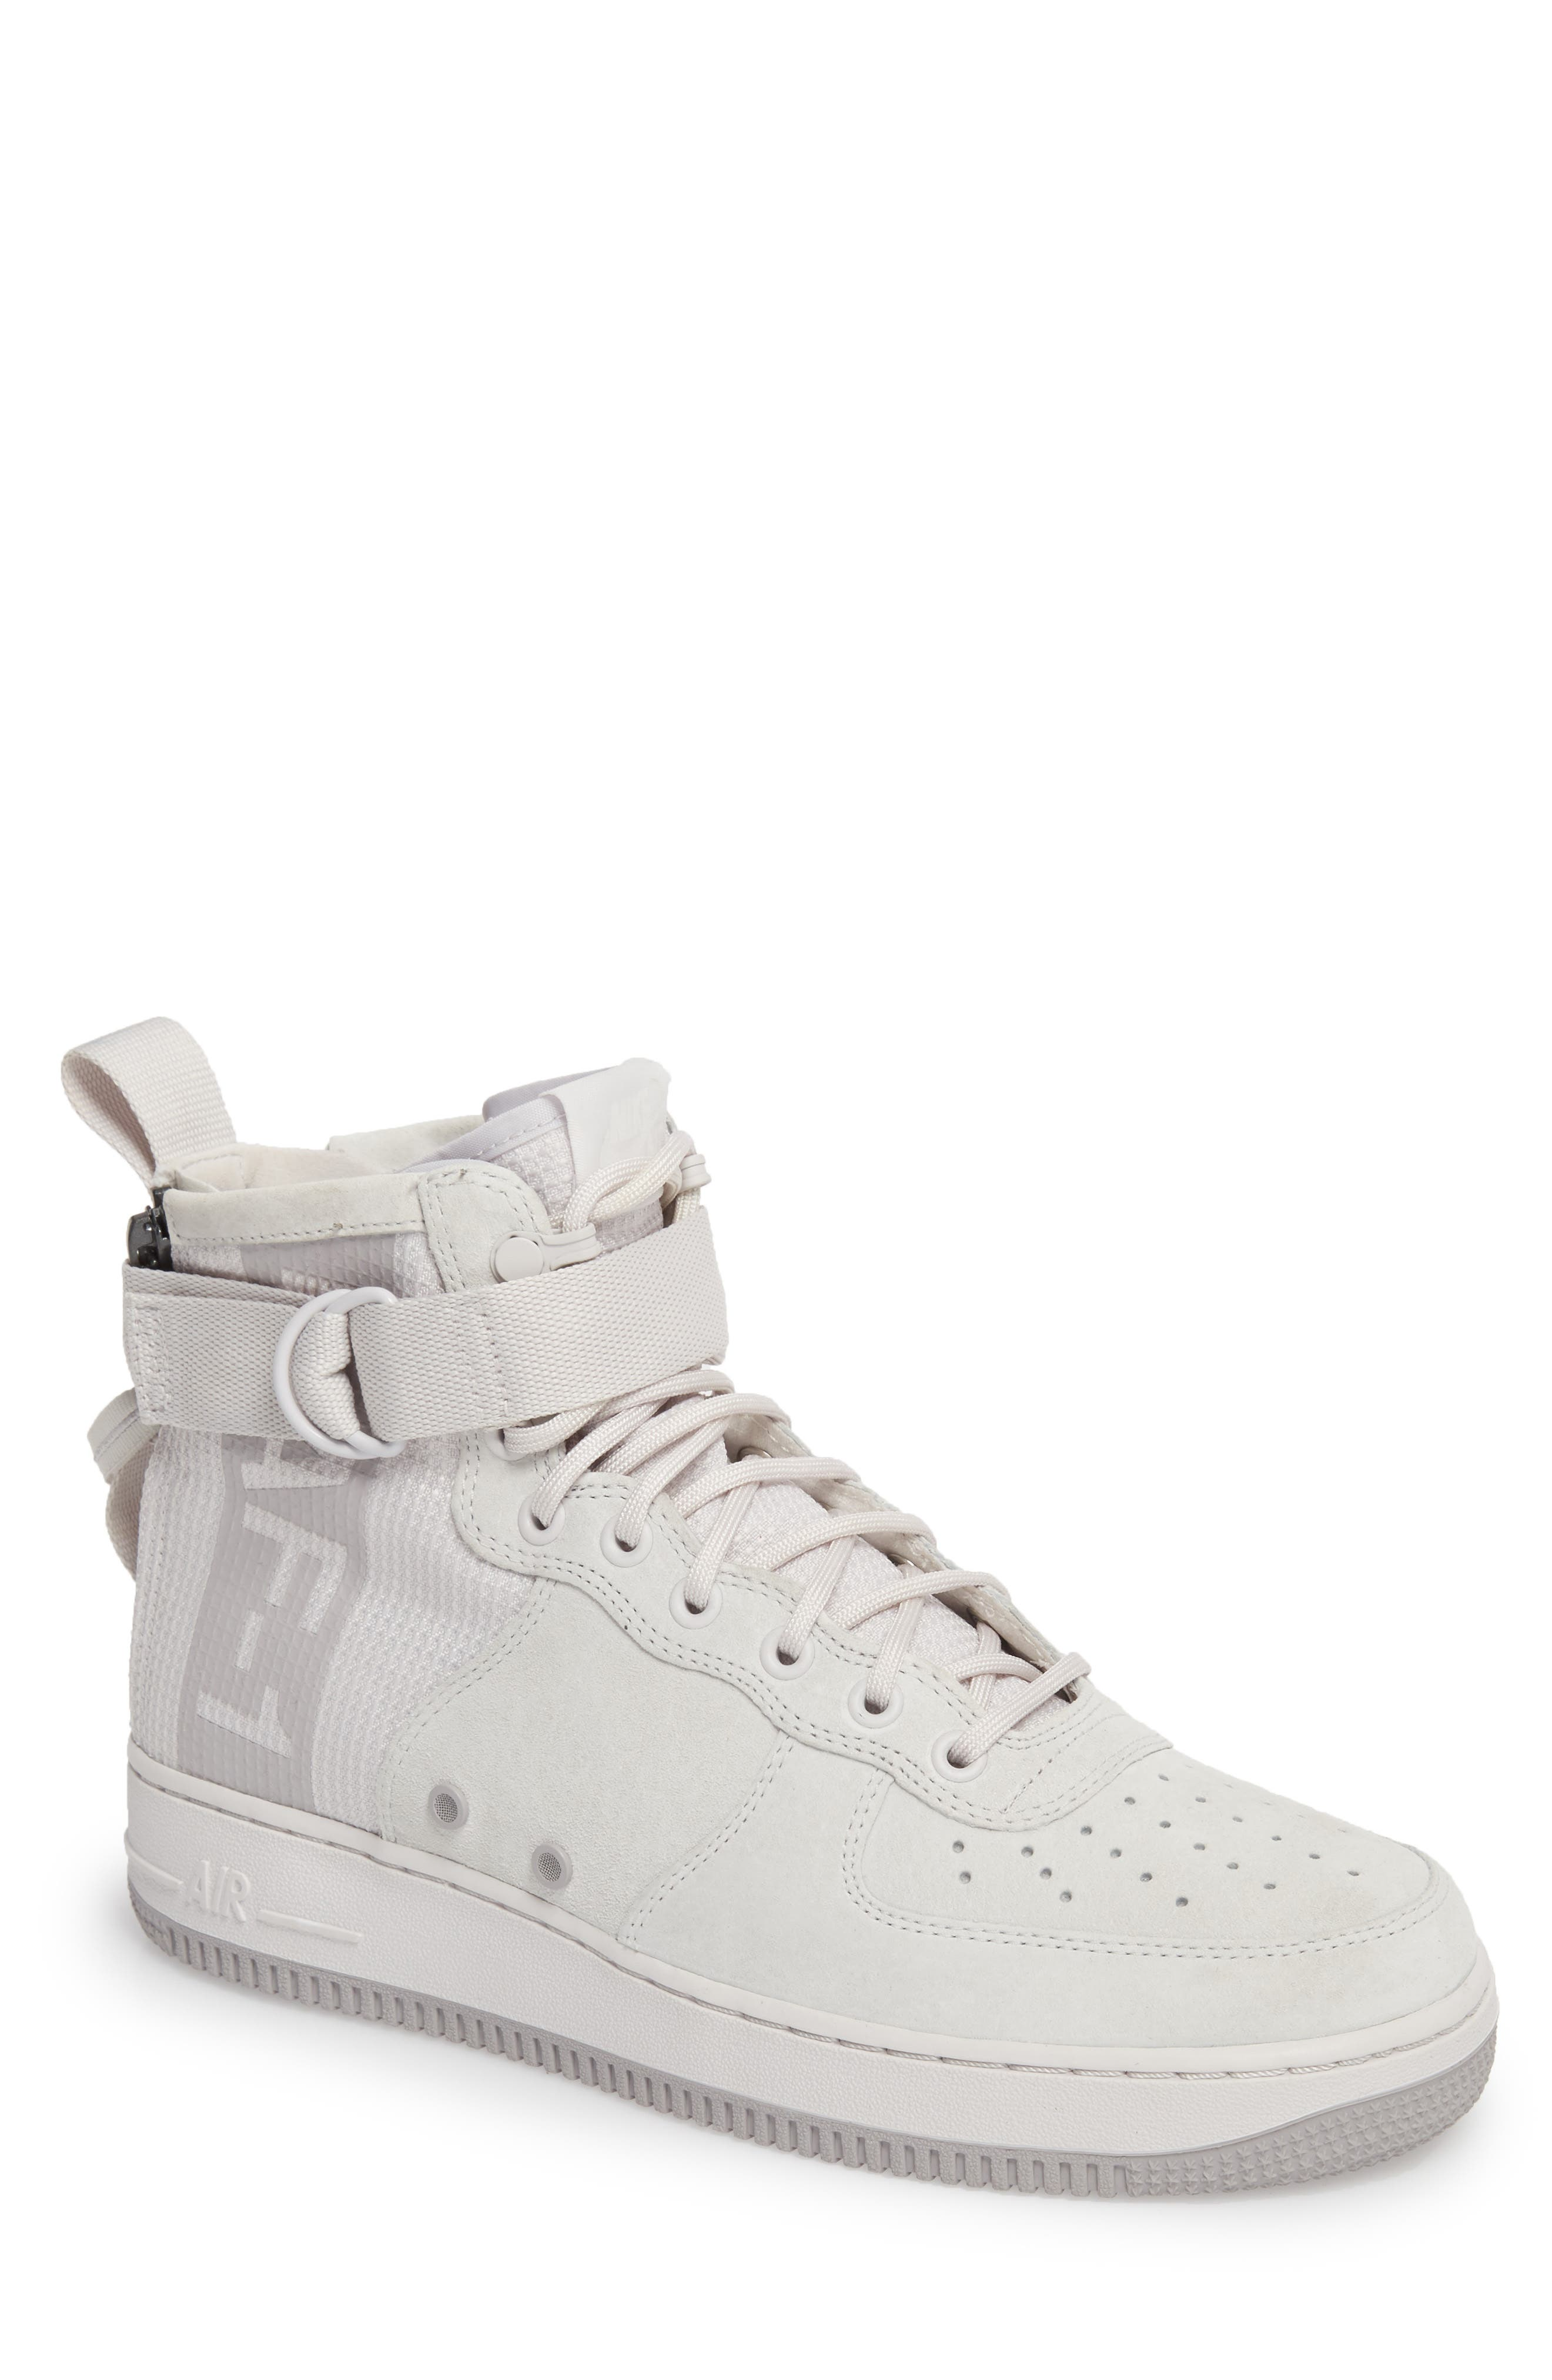 SF Air Force 1 Mid Suede Sneaker,                         Main,                         color, 021